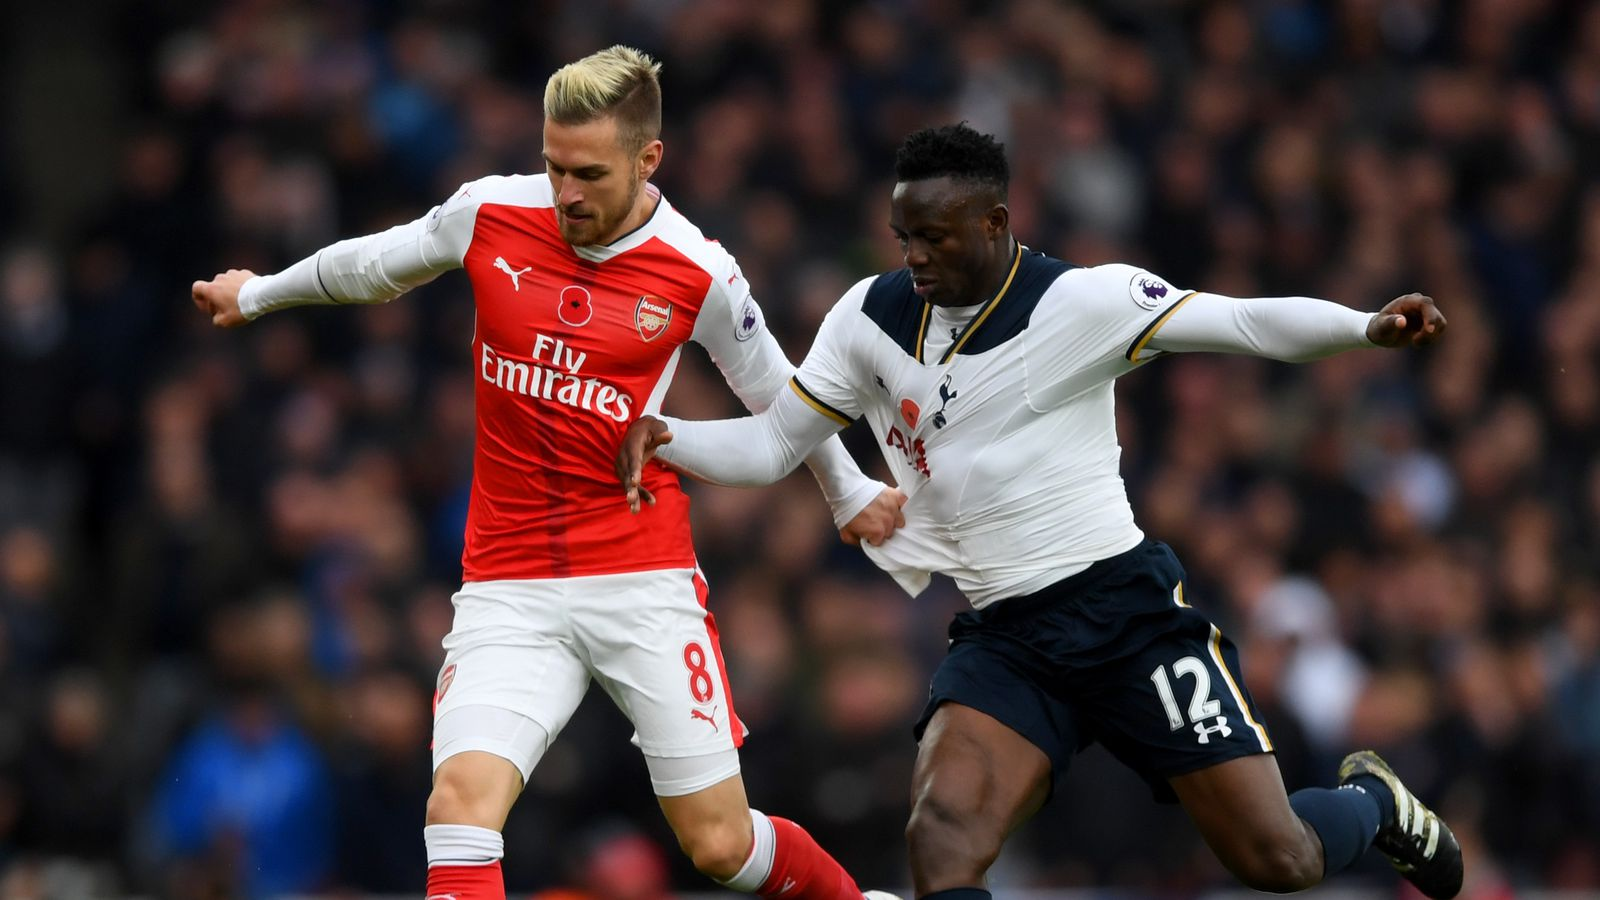 Watch Arsenal vs Tottenham Live Streaming plus matches vs Manchester United and all other premier league and Europa League Matches live here